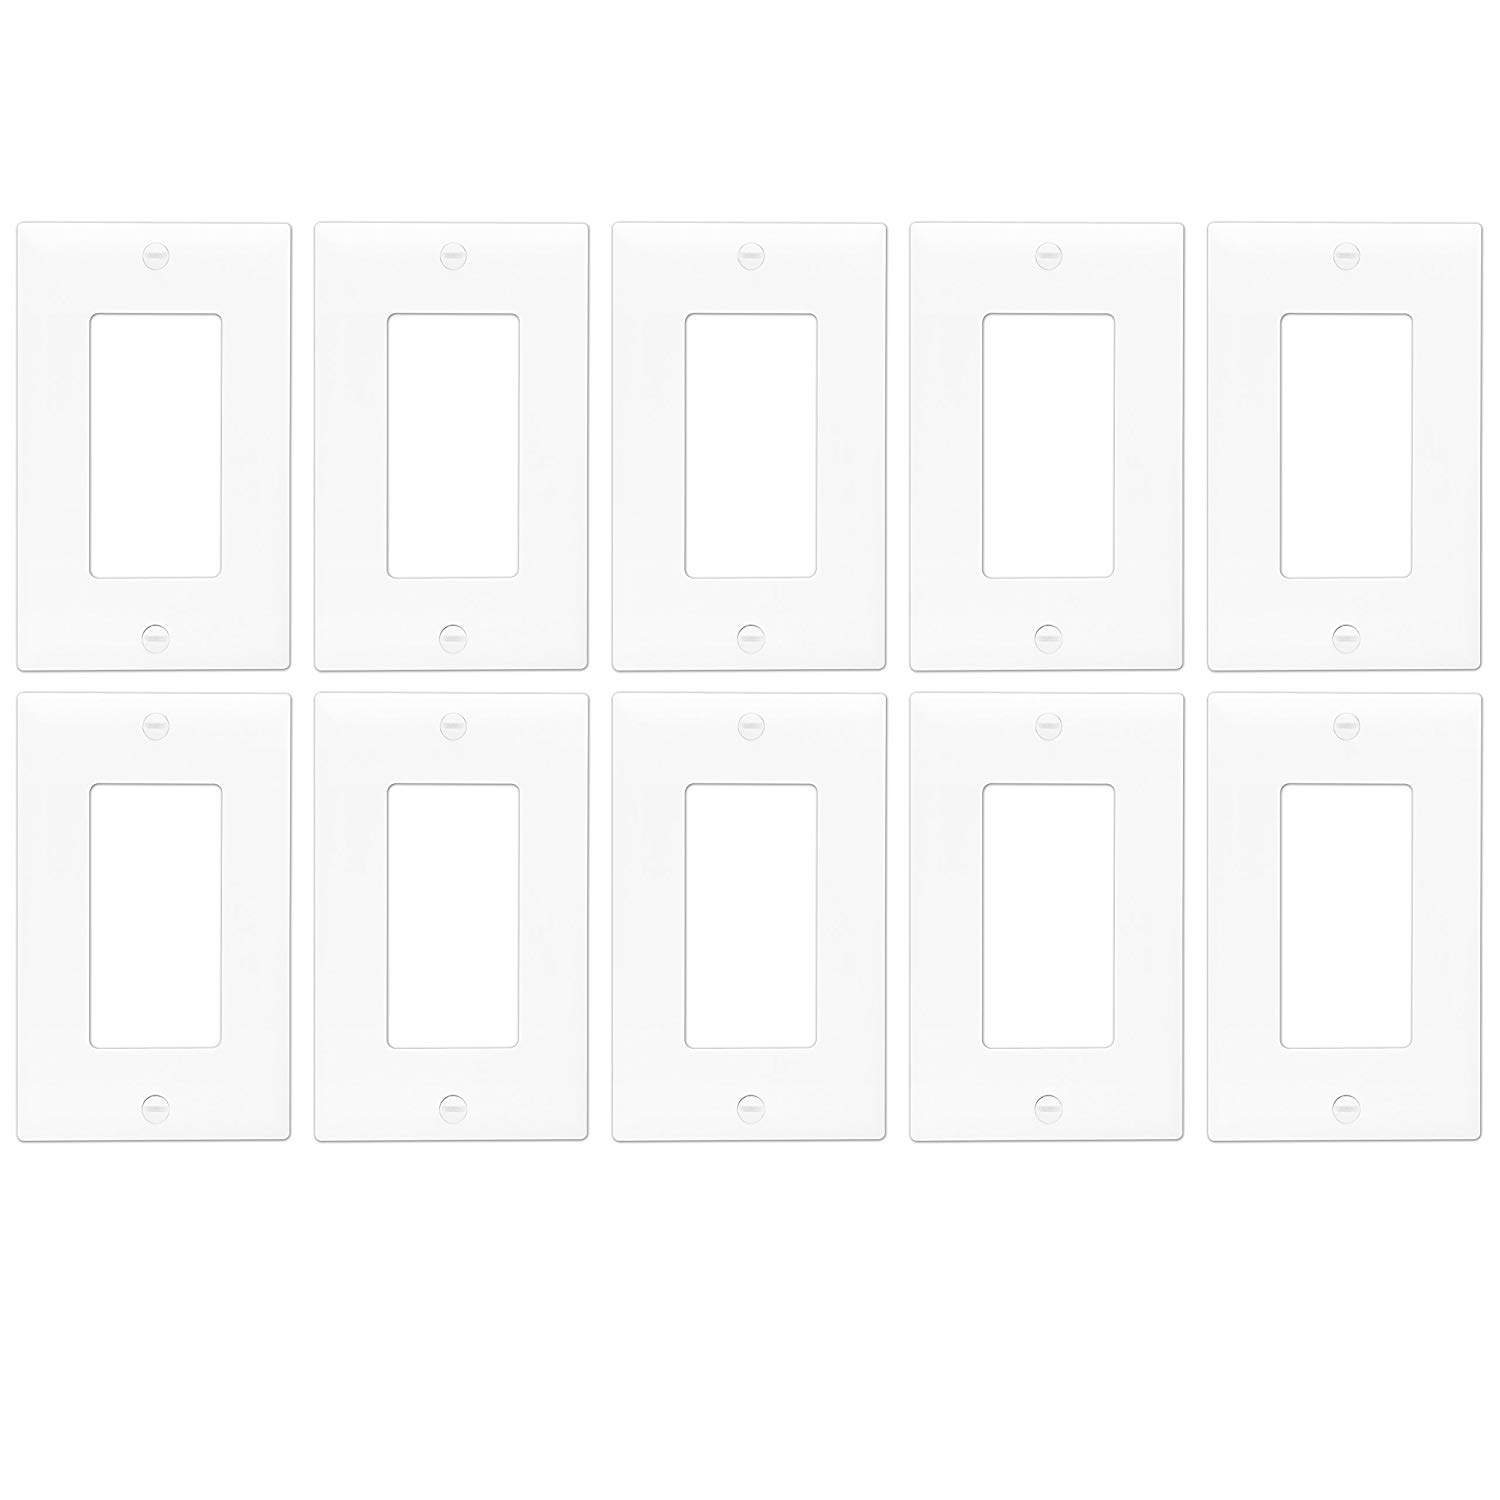 Enerlites 8831M-W-10PCS Decorator Light Switch/Receptacle Outlet Wall Plate, Mid-Size 1-Gang, Polycarbonate Thermoplastic, White, 10 Pack